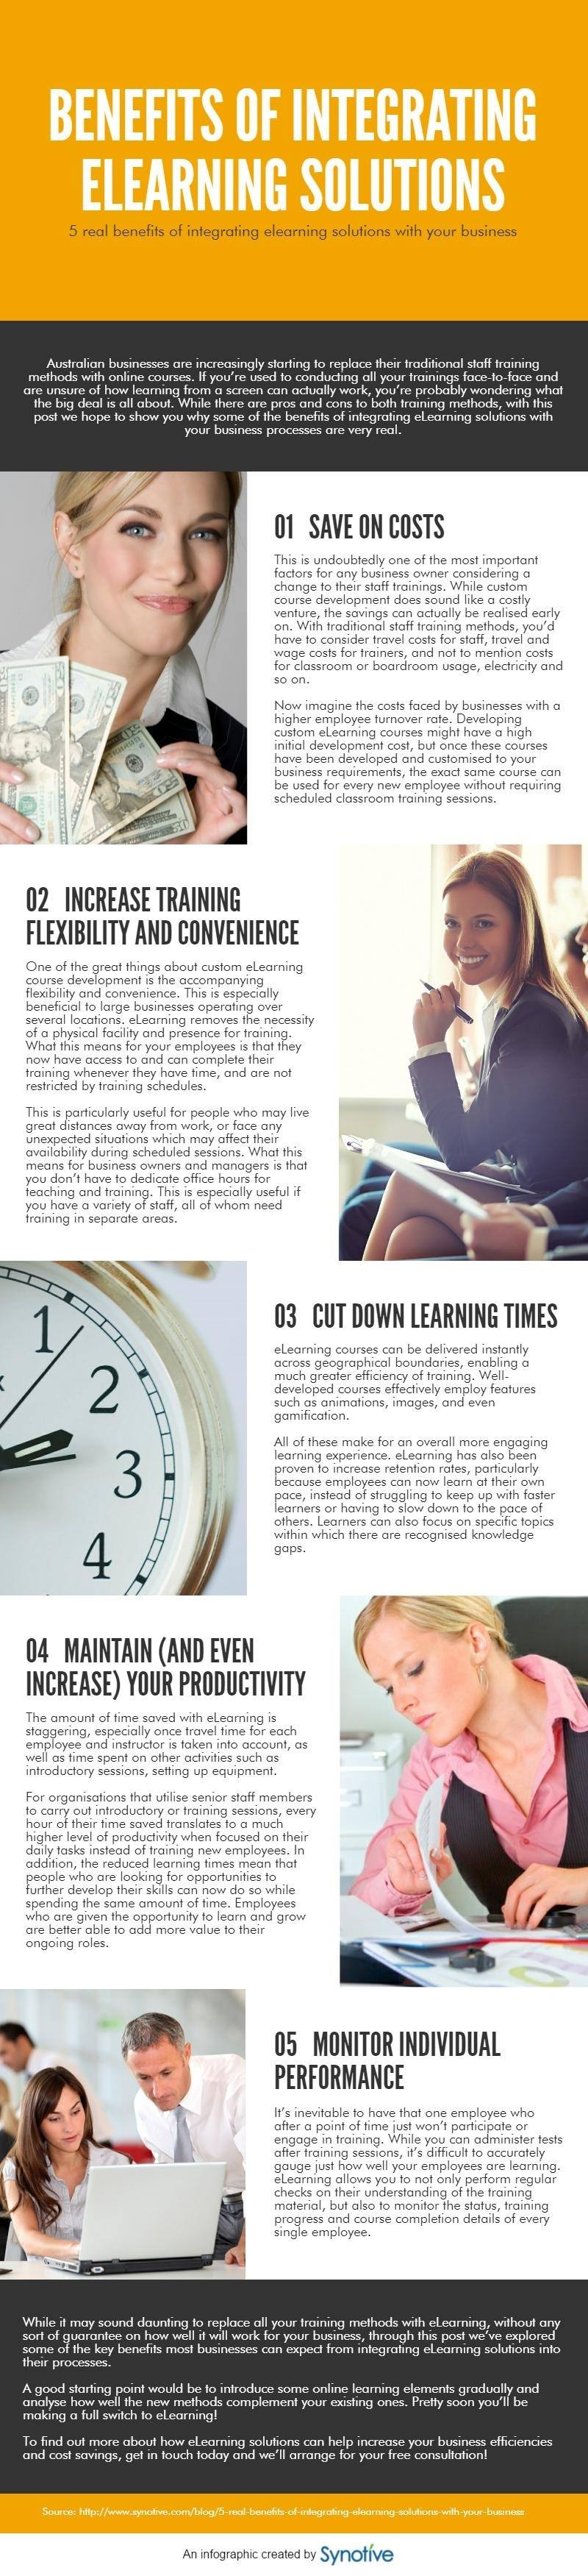 Benefits of Integrating eLearning Solutions with Your Business Infographic